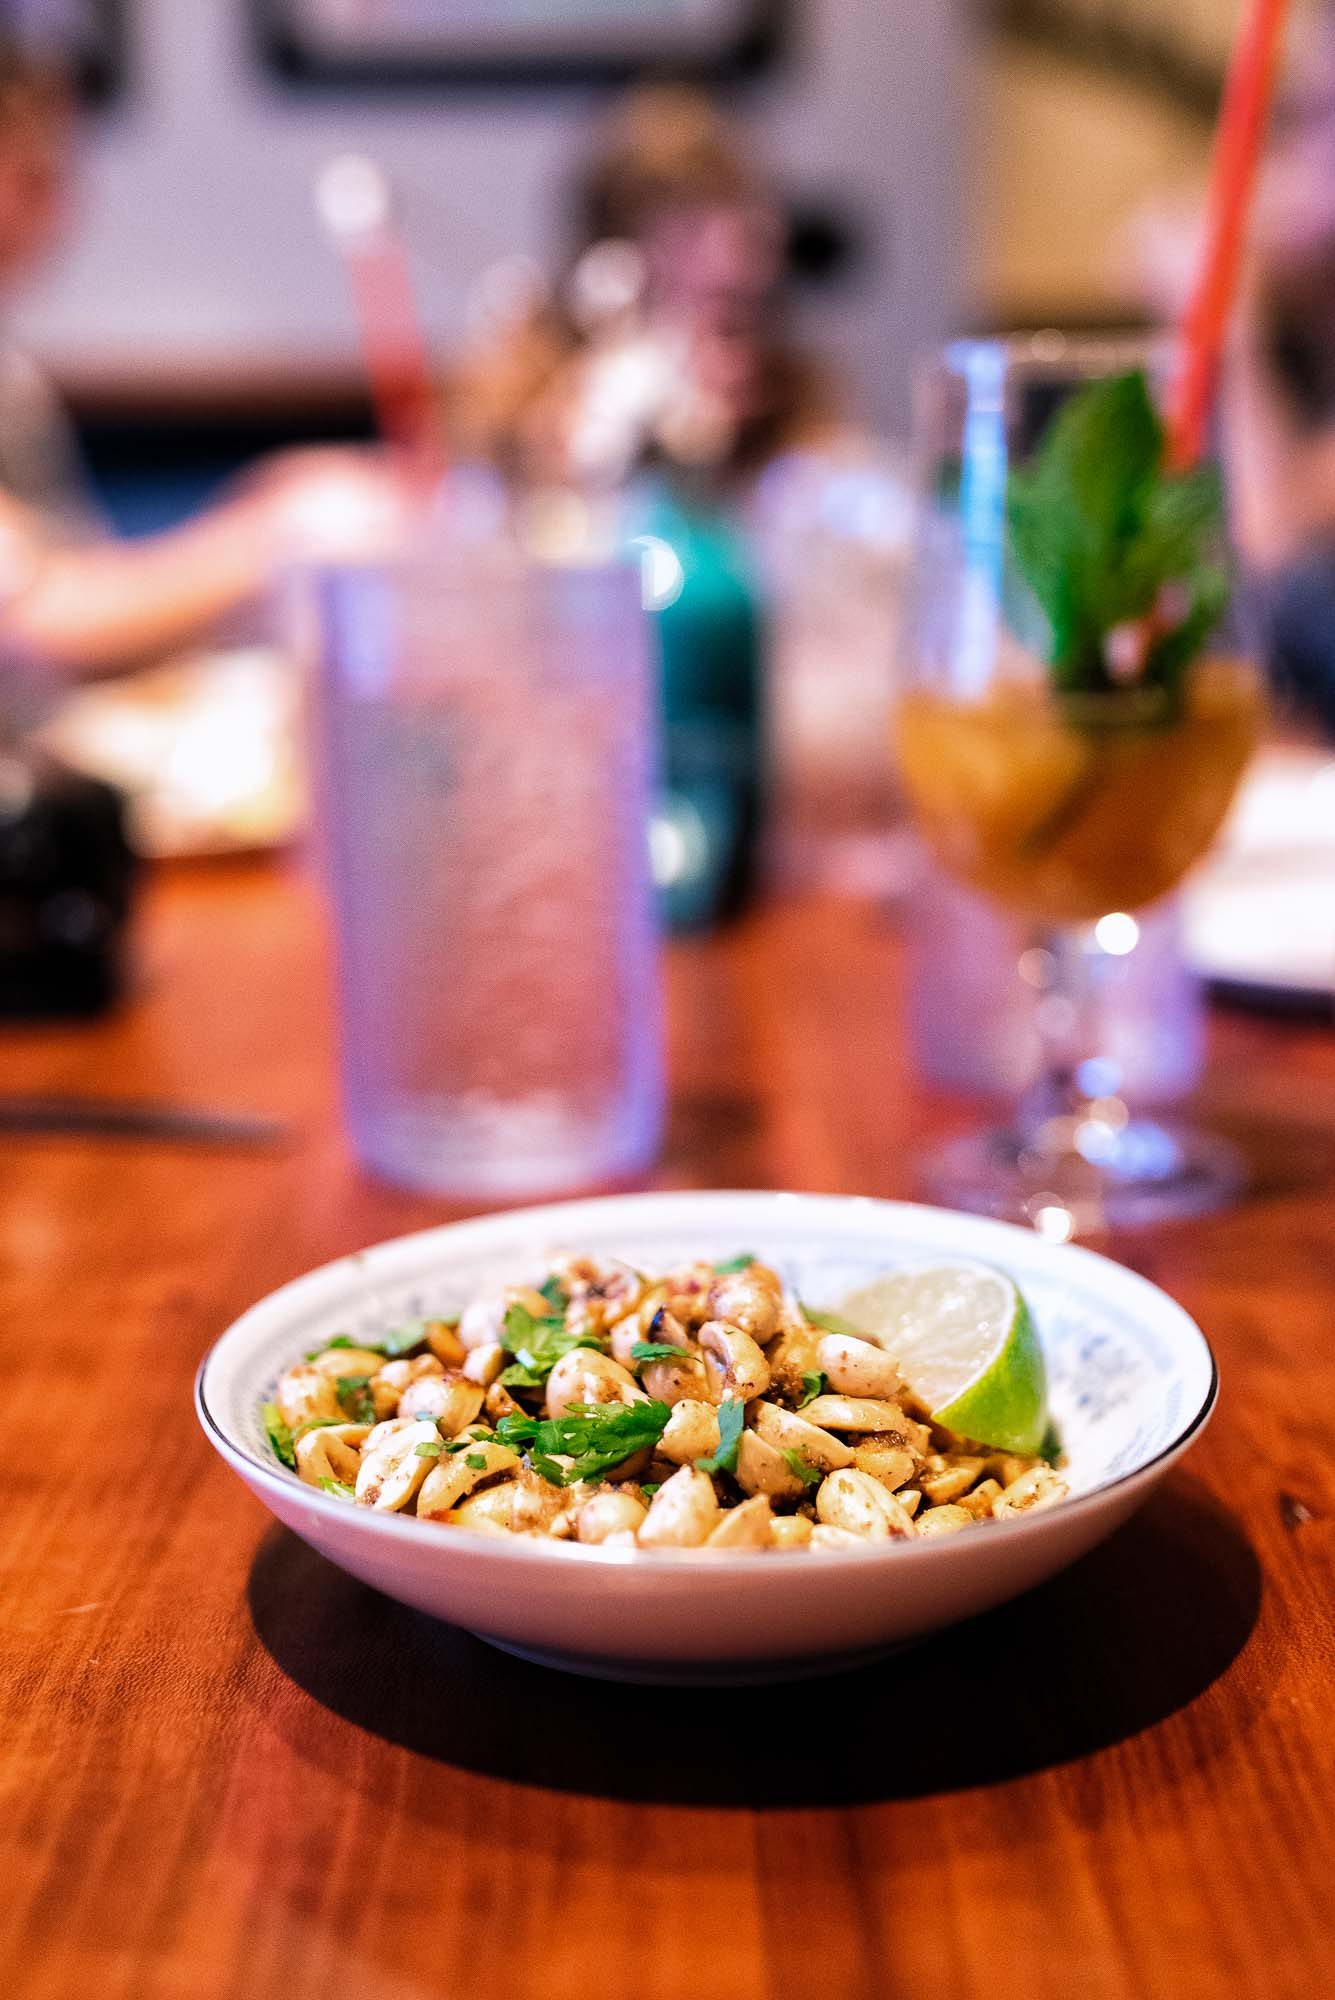 Publico-Happy-Hour-Spiced-Peanuts.jpg